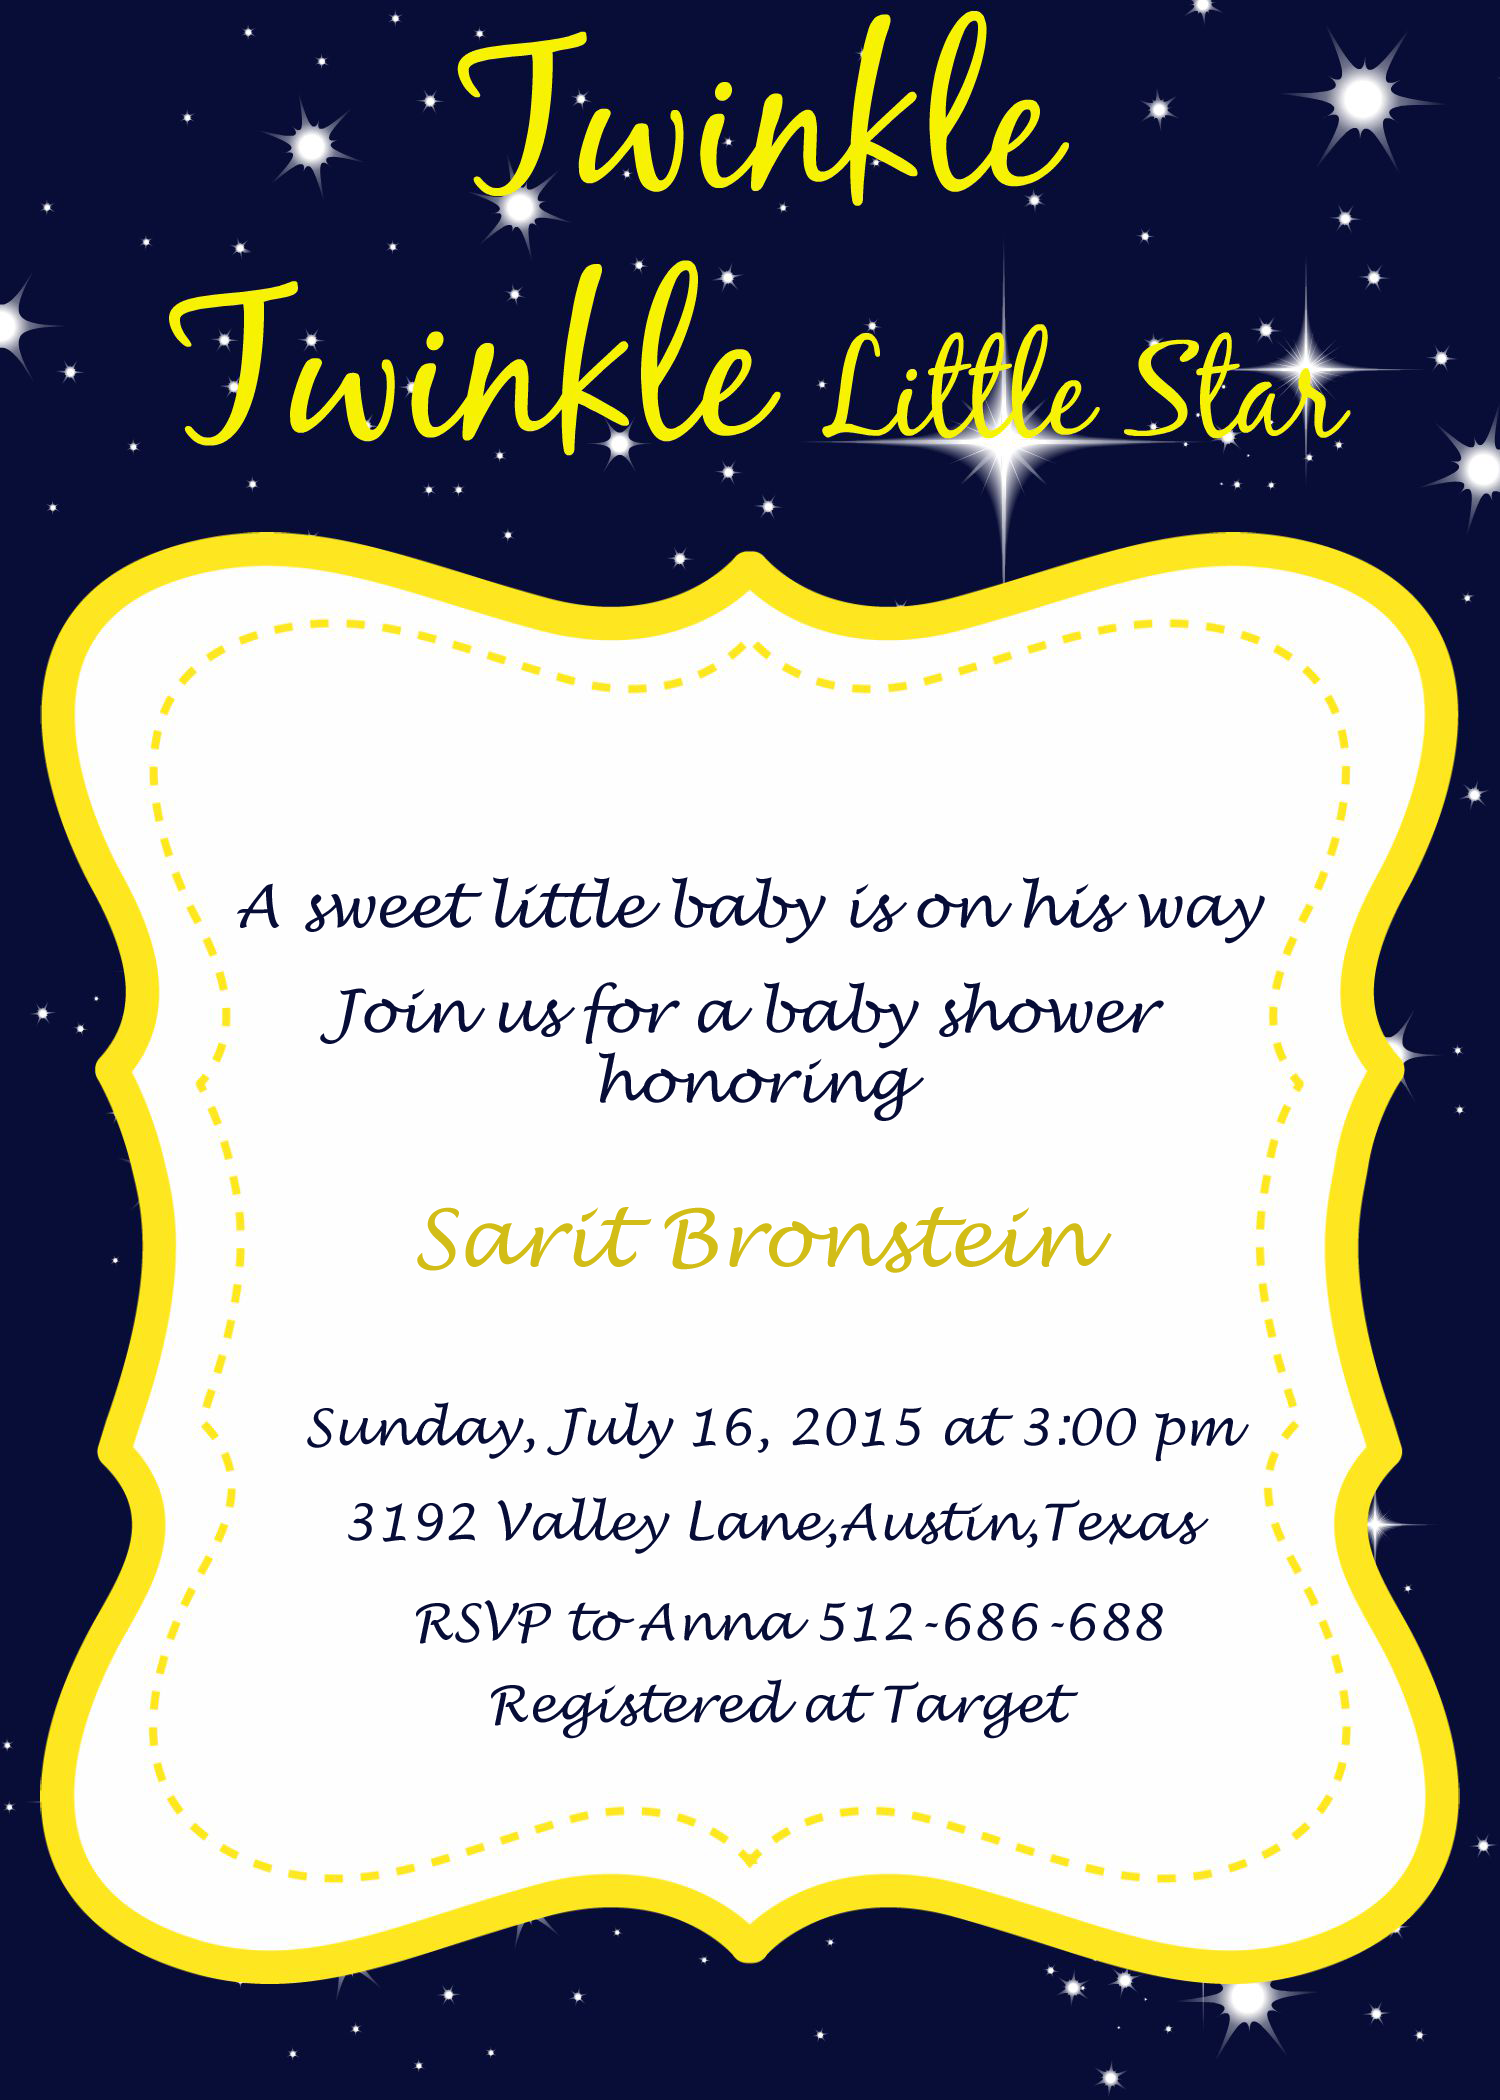 Twinkle twinkle baby shower ideas my practical baby shower guide personalized twinkle twinkle baby shower invitation by 2rabbitsprintenjoy filmwisefo